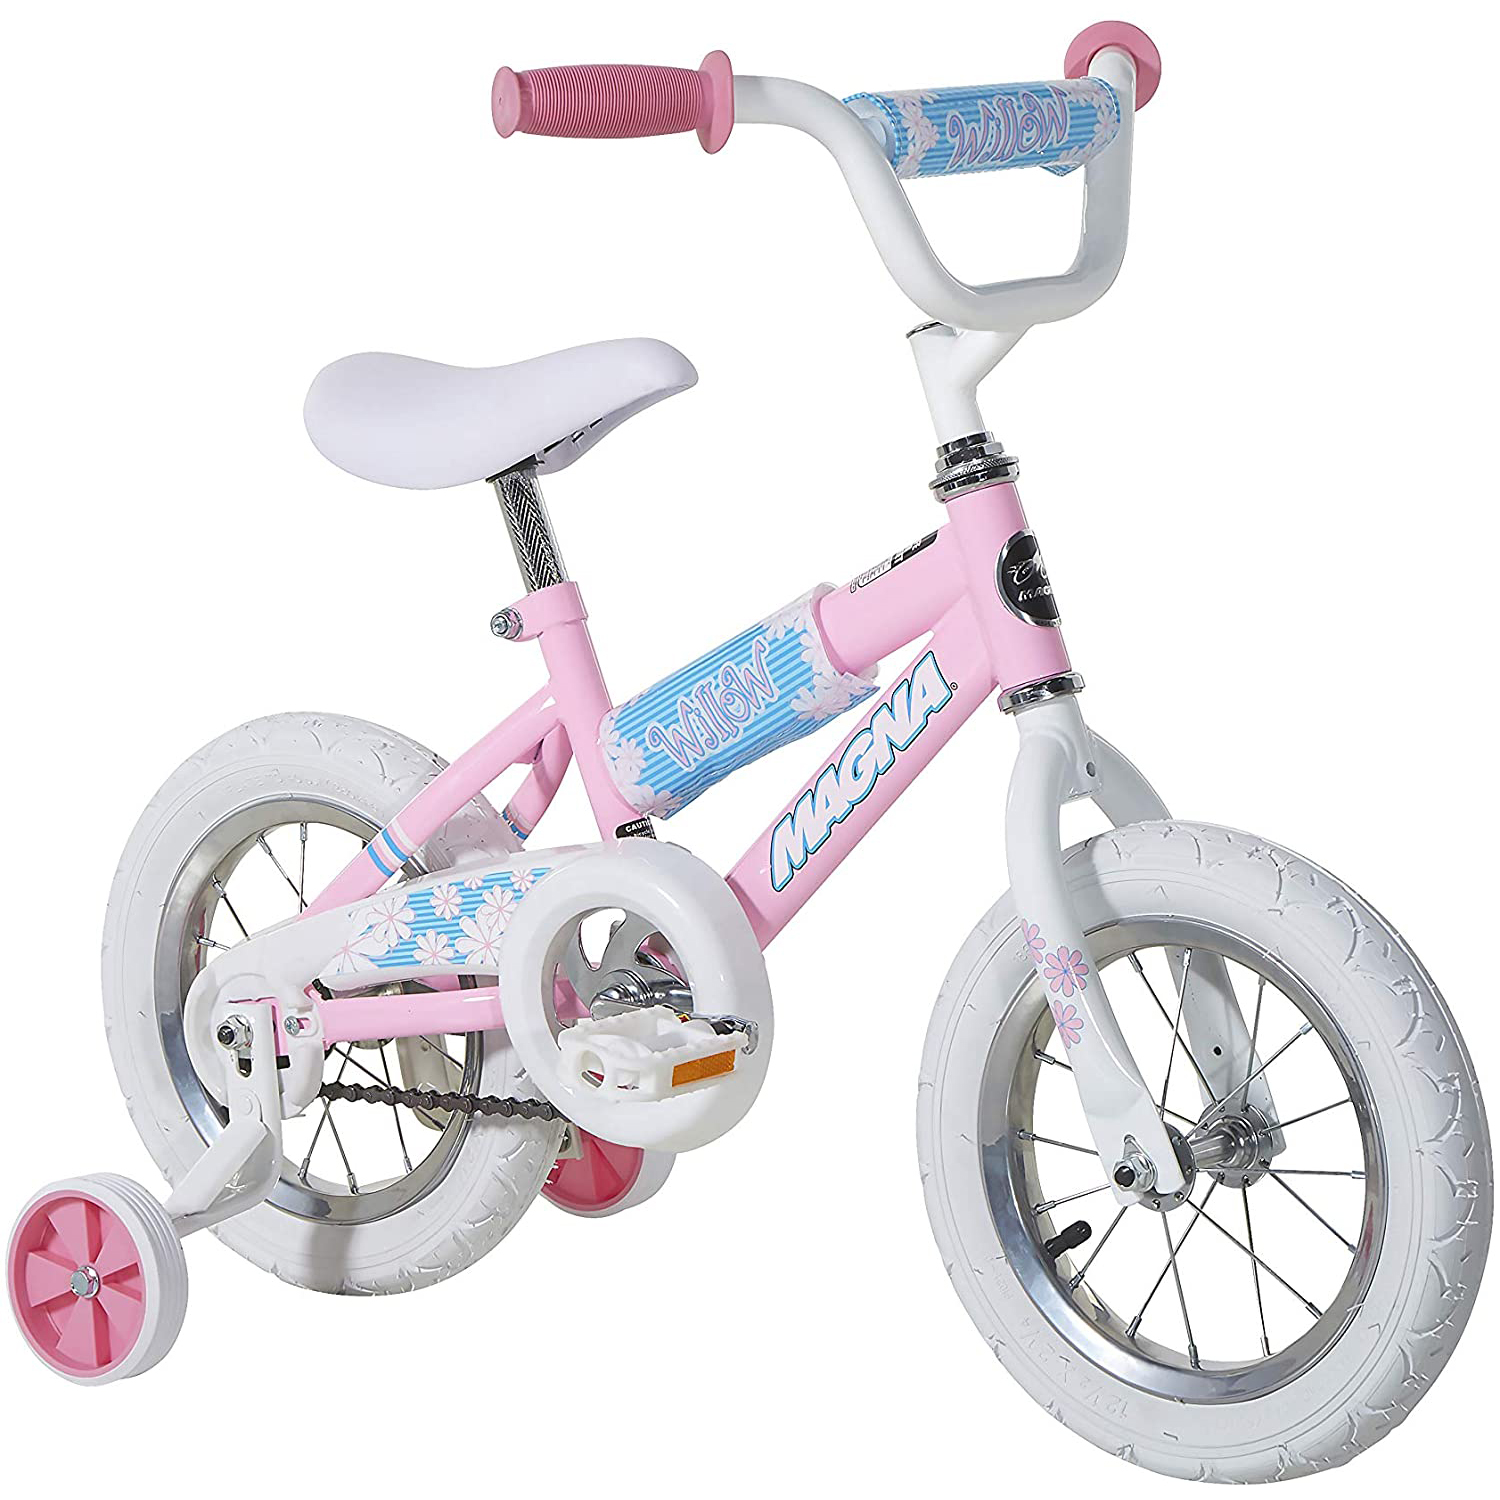 Dynacraft Manga Children's 12 Inch Beginner Bike with Traini